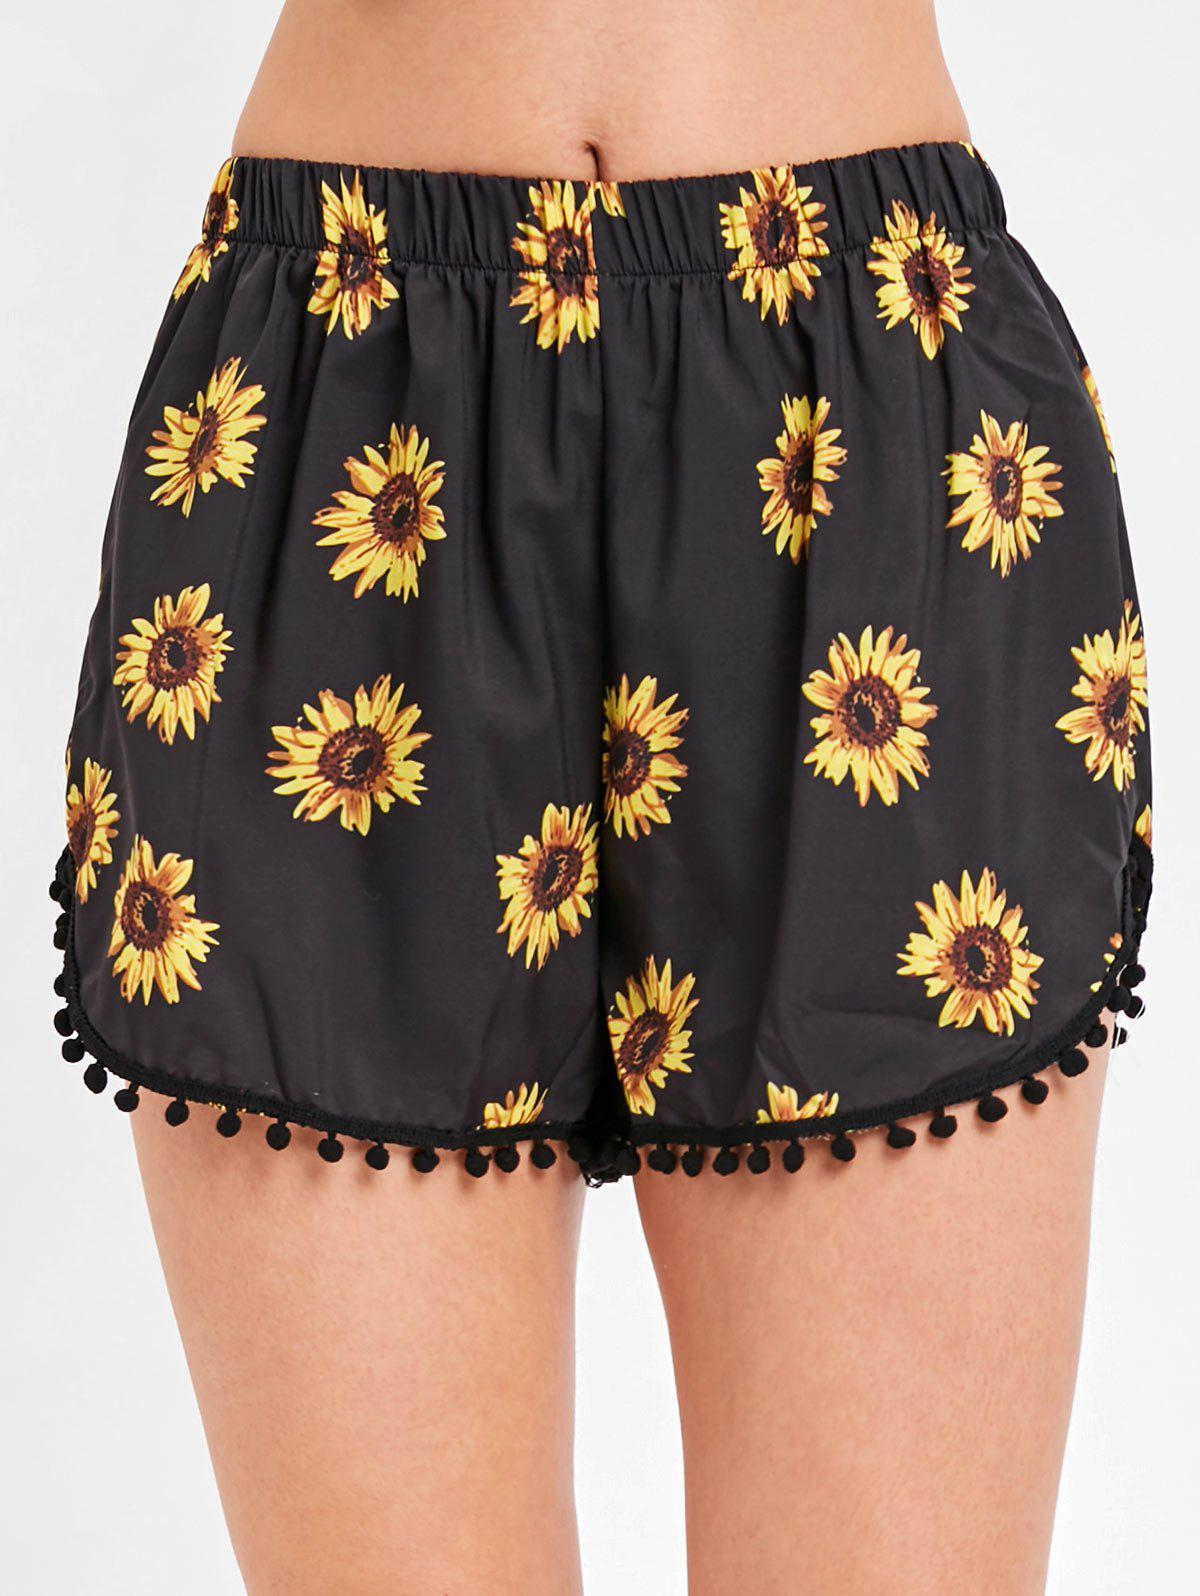 Unique Sunflower Pull On Beach Shorts